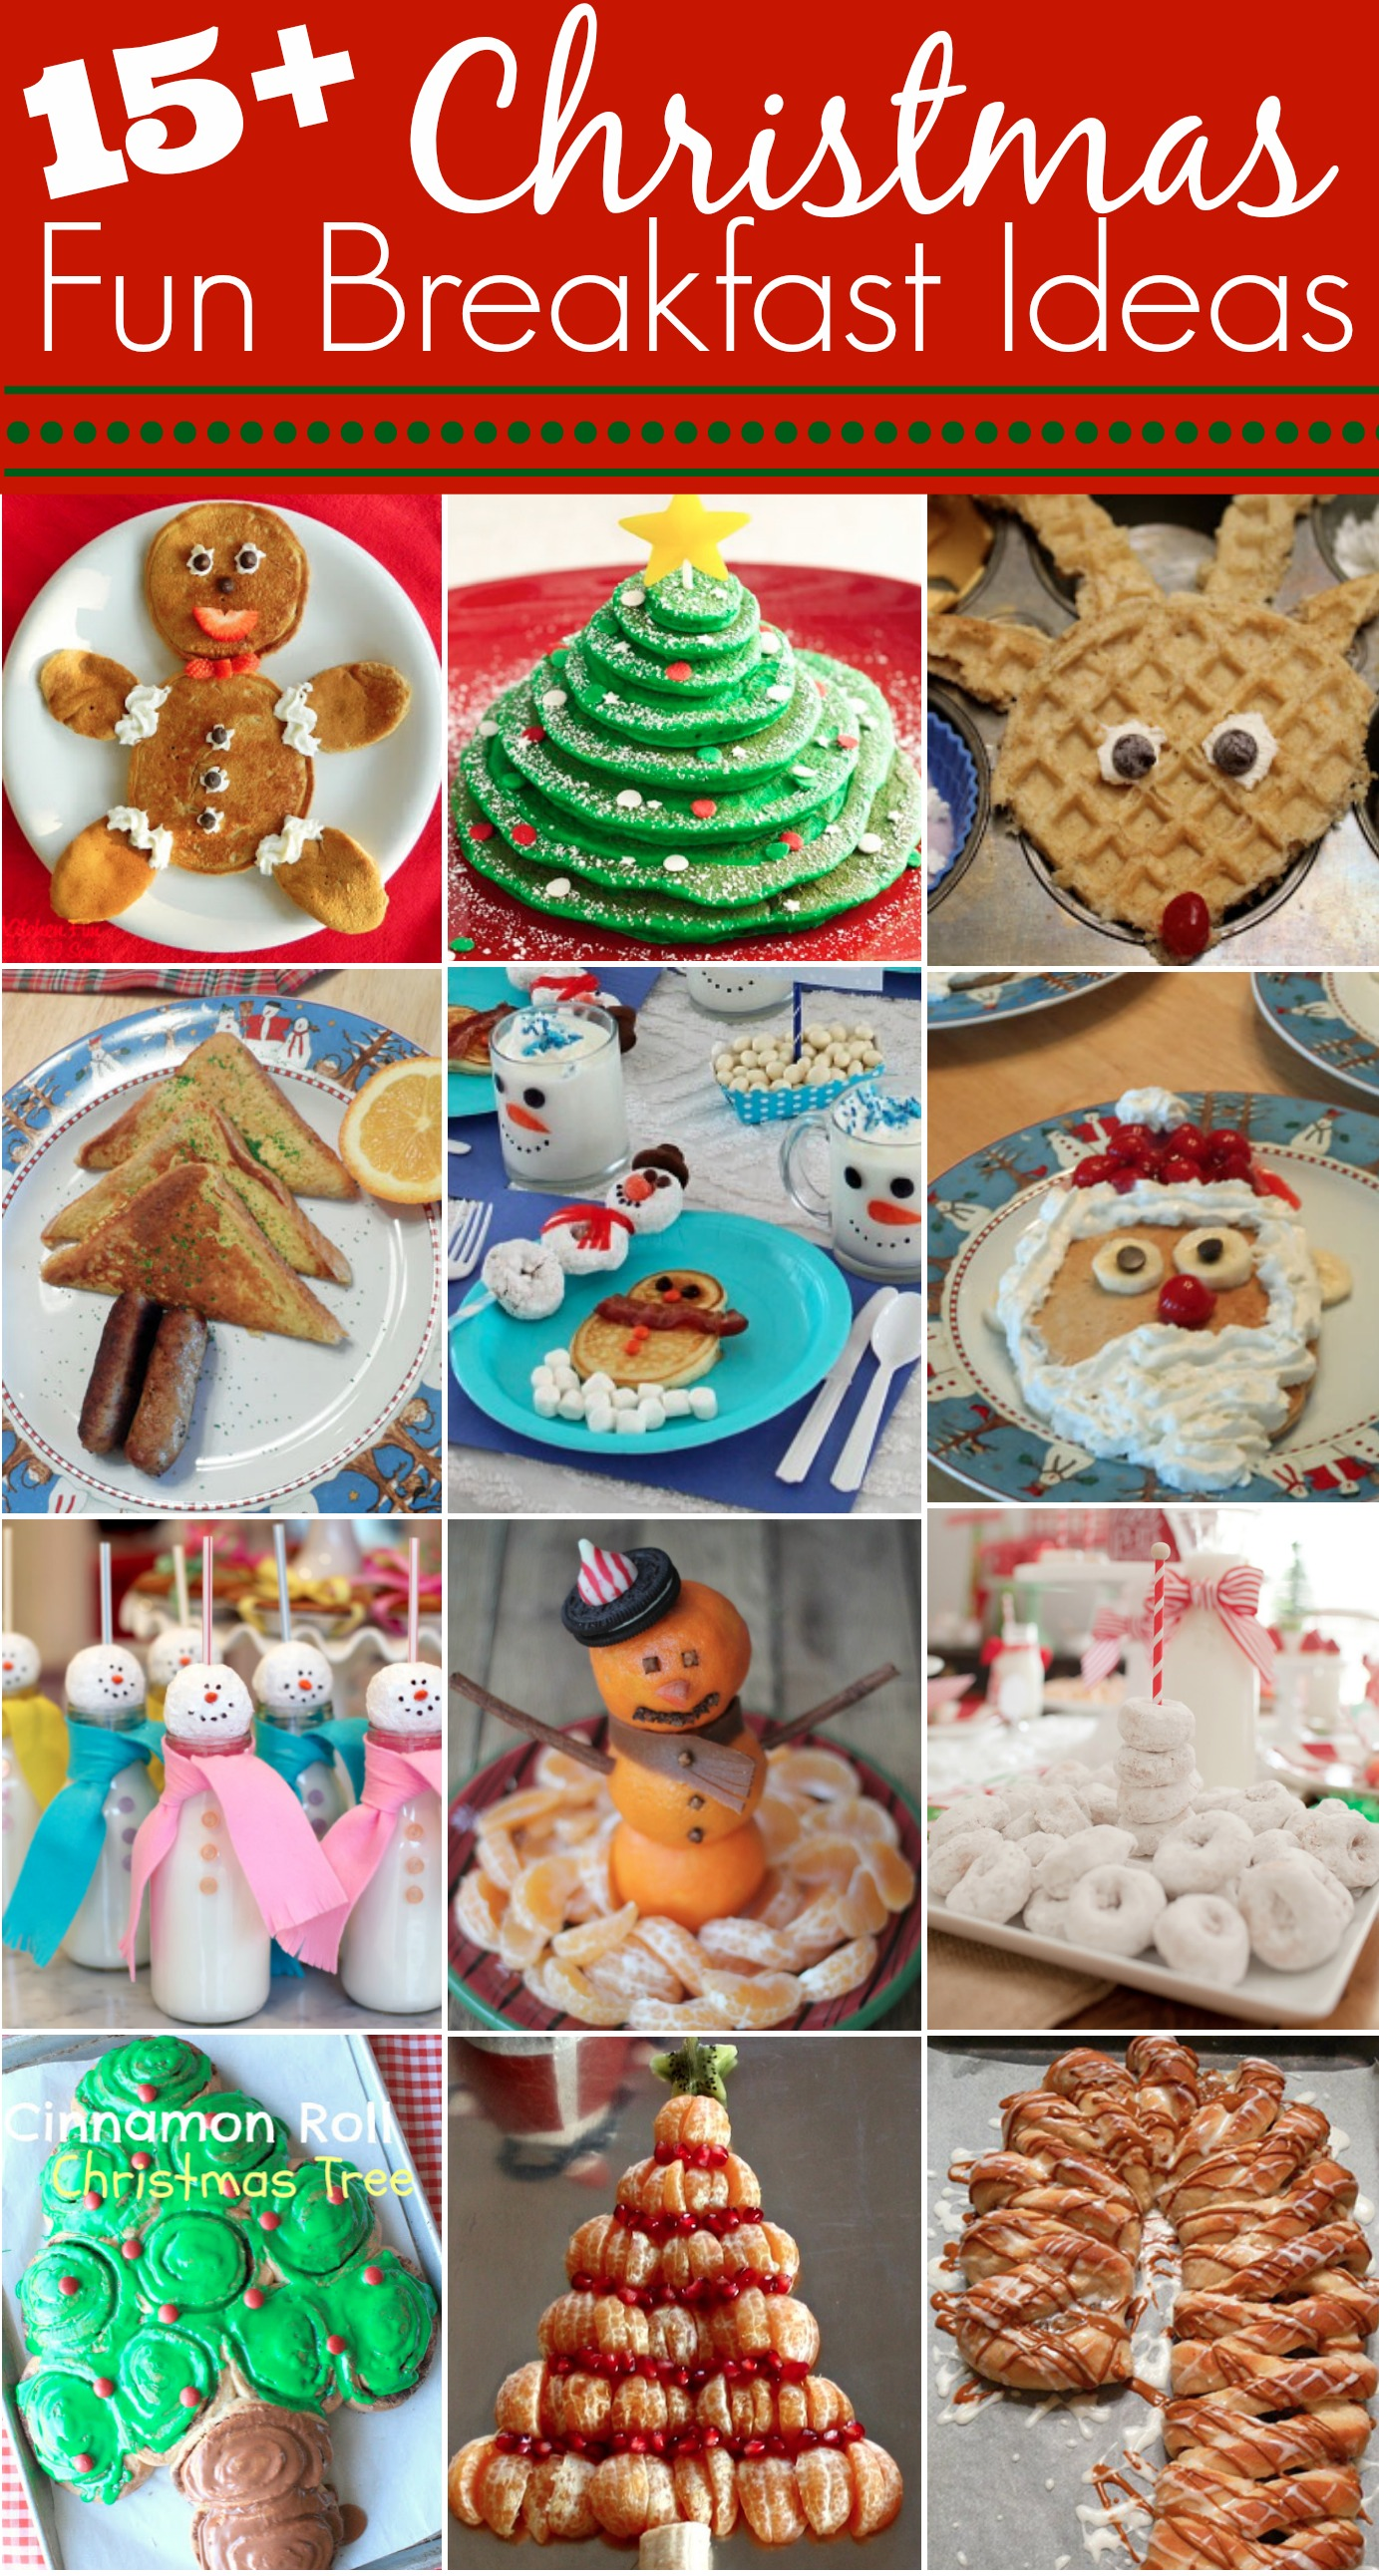 15 Fun Christmas Breakfast Ideas